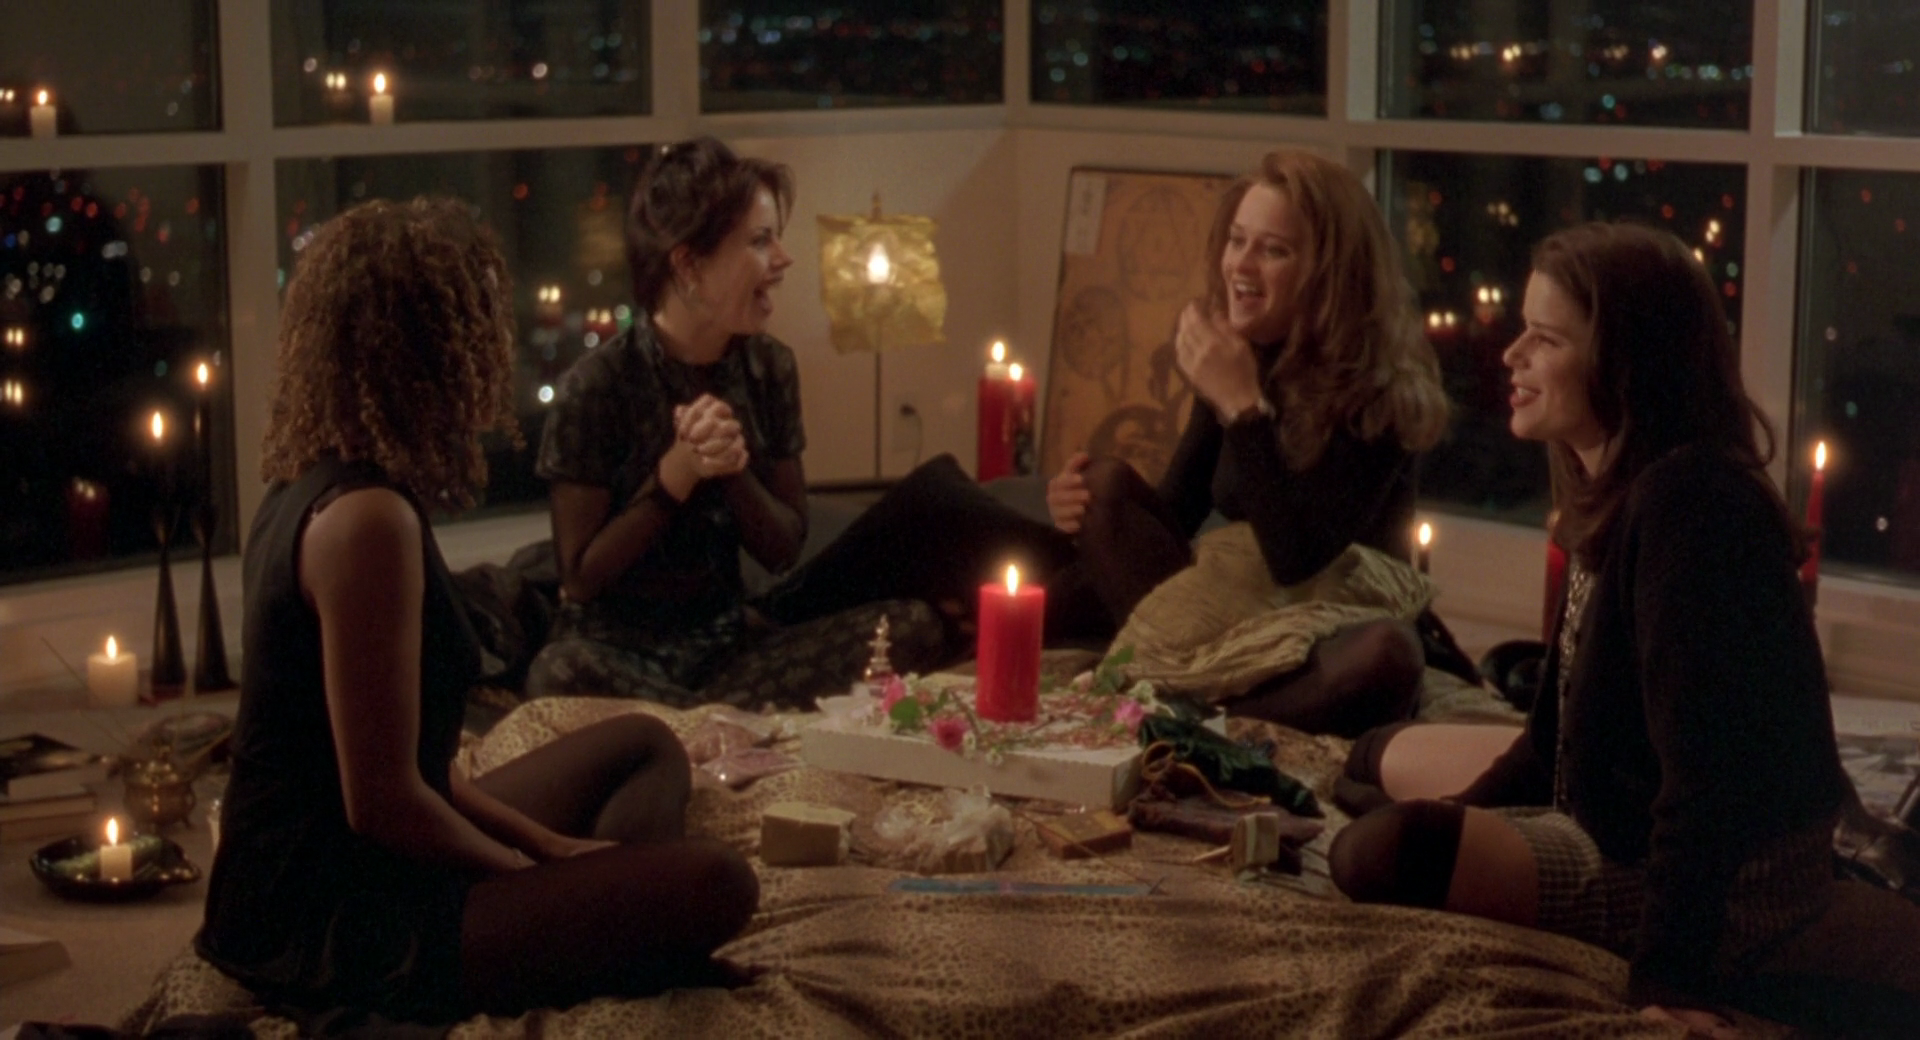 Sabrina The Teenage Witch Bedroom Witches And Rebellious Women Why The Craft Continues To Kick